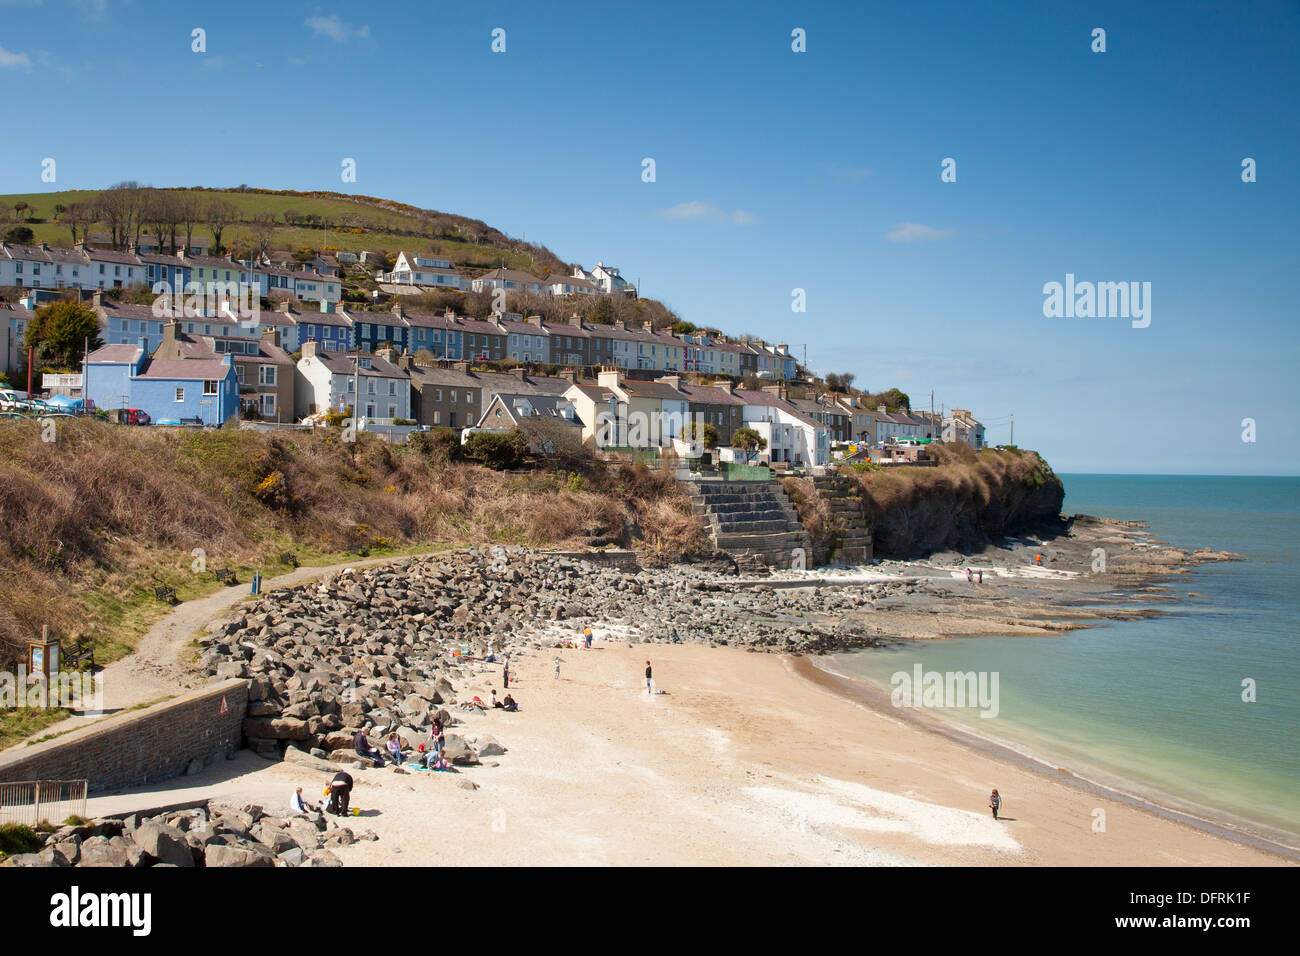 View of the beach and town of Cei Newydd New Quay Wales - Stock Image